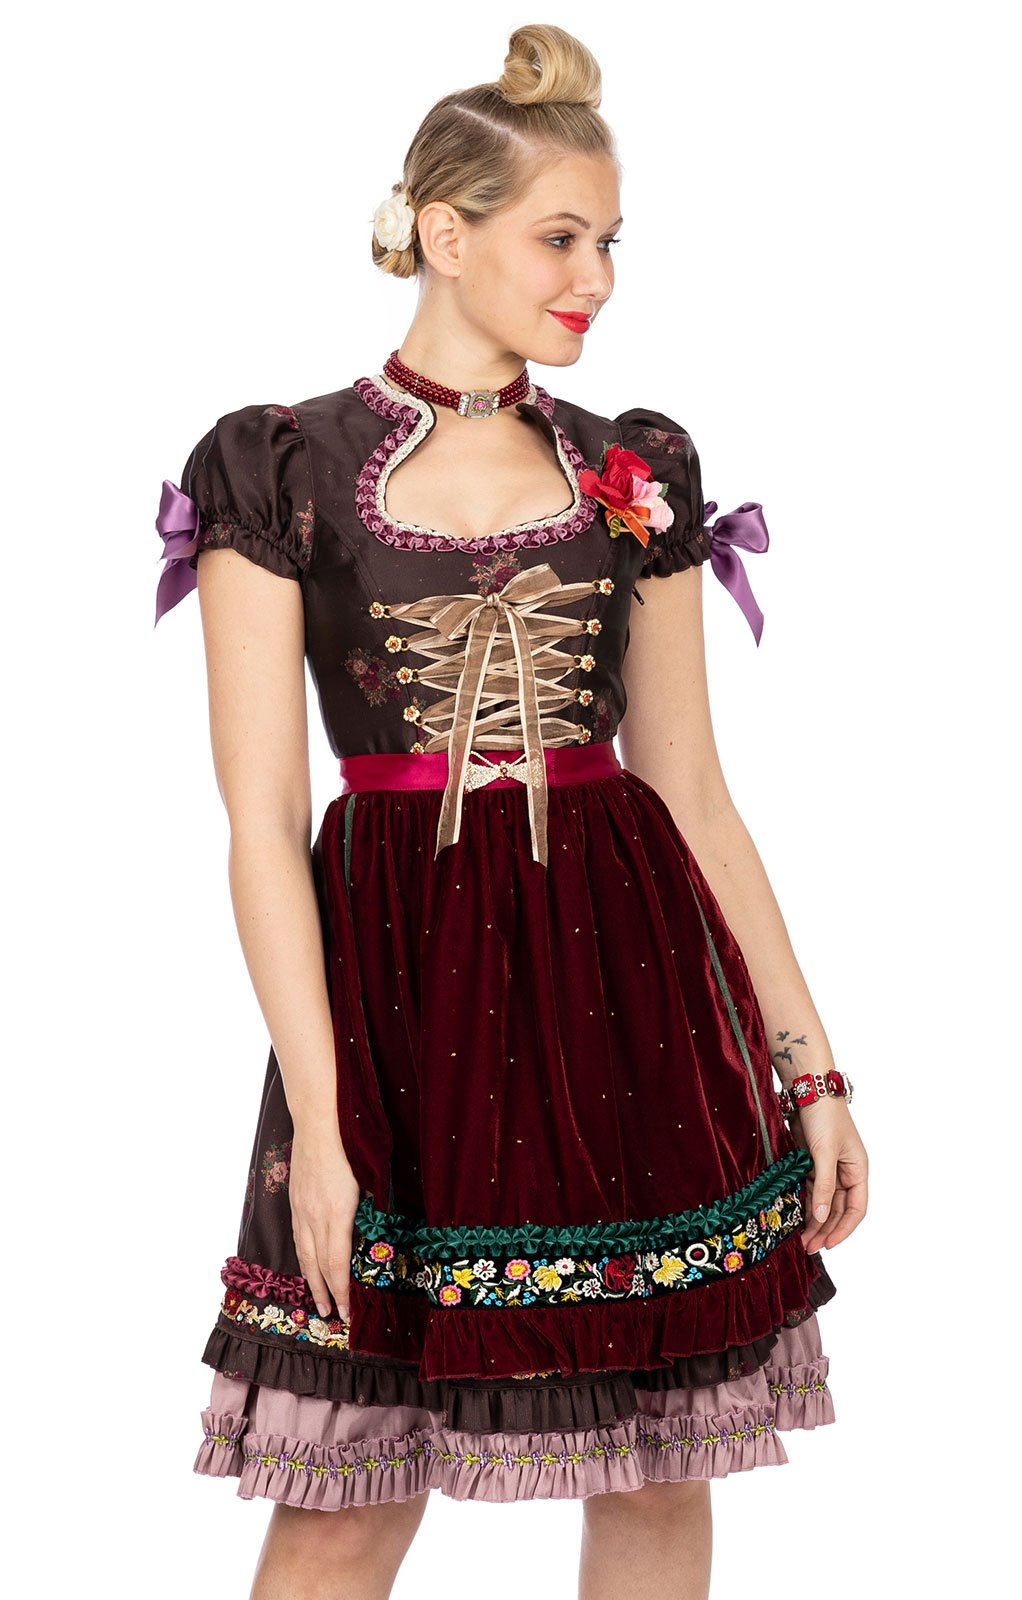 Midi Dirndl Lola Paltinger 2pz. 60 cm SHARON marrone bordó von Stockerpoint